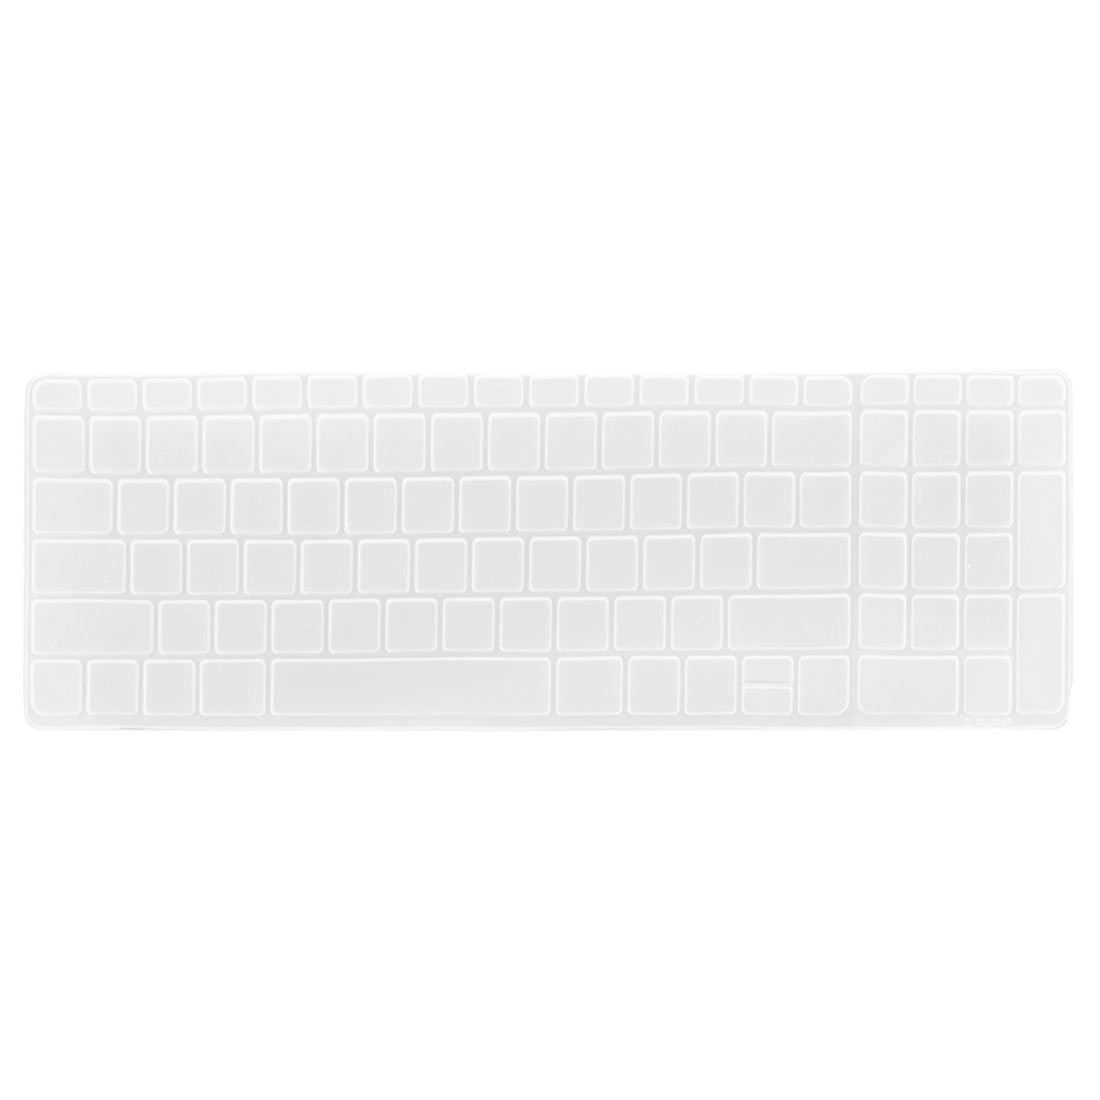 Clear Silicone Computer Keyboard Skin Protective Film for HP029